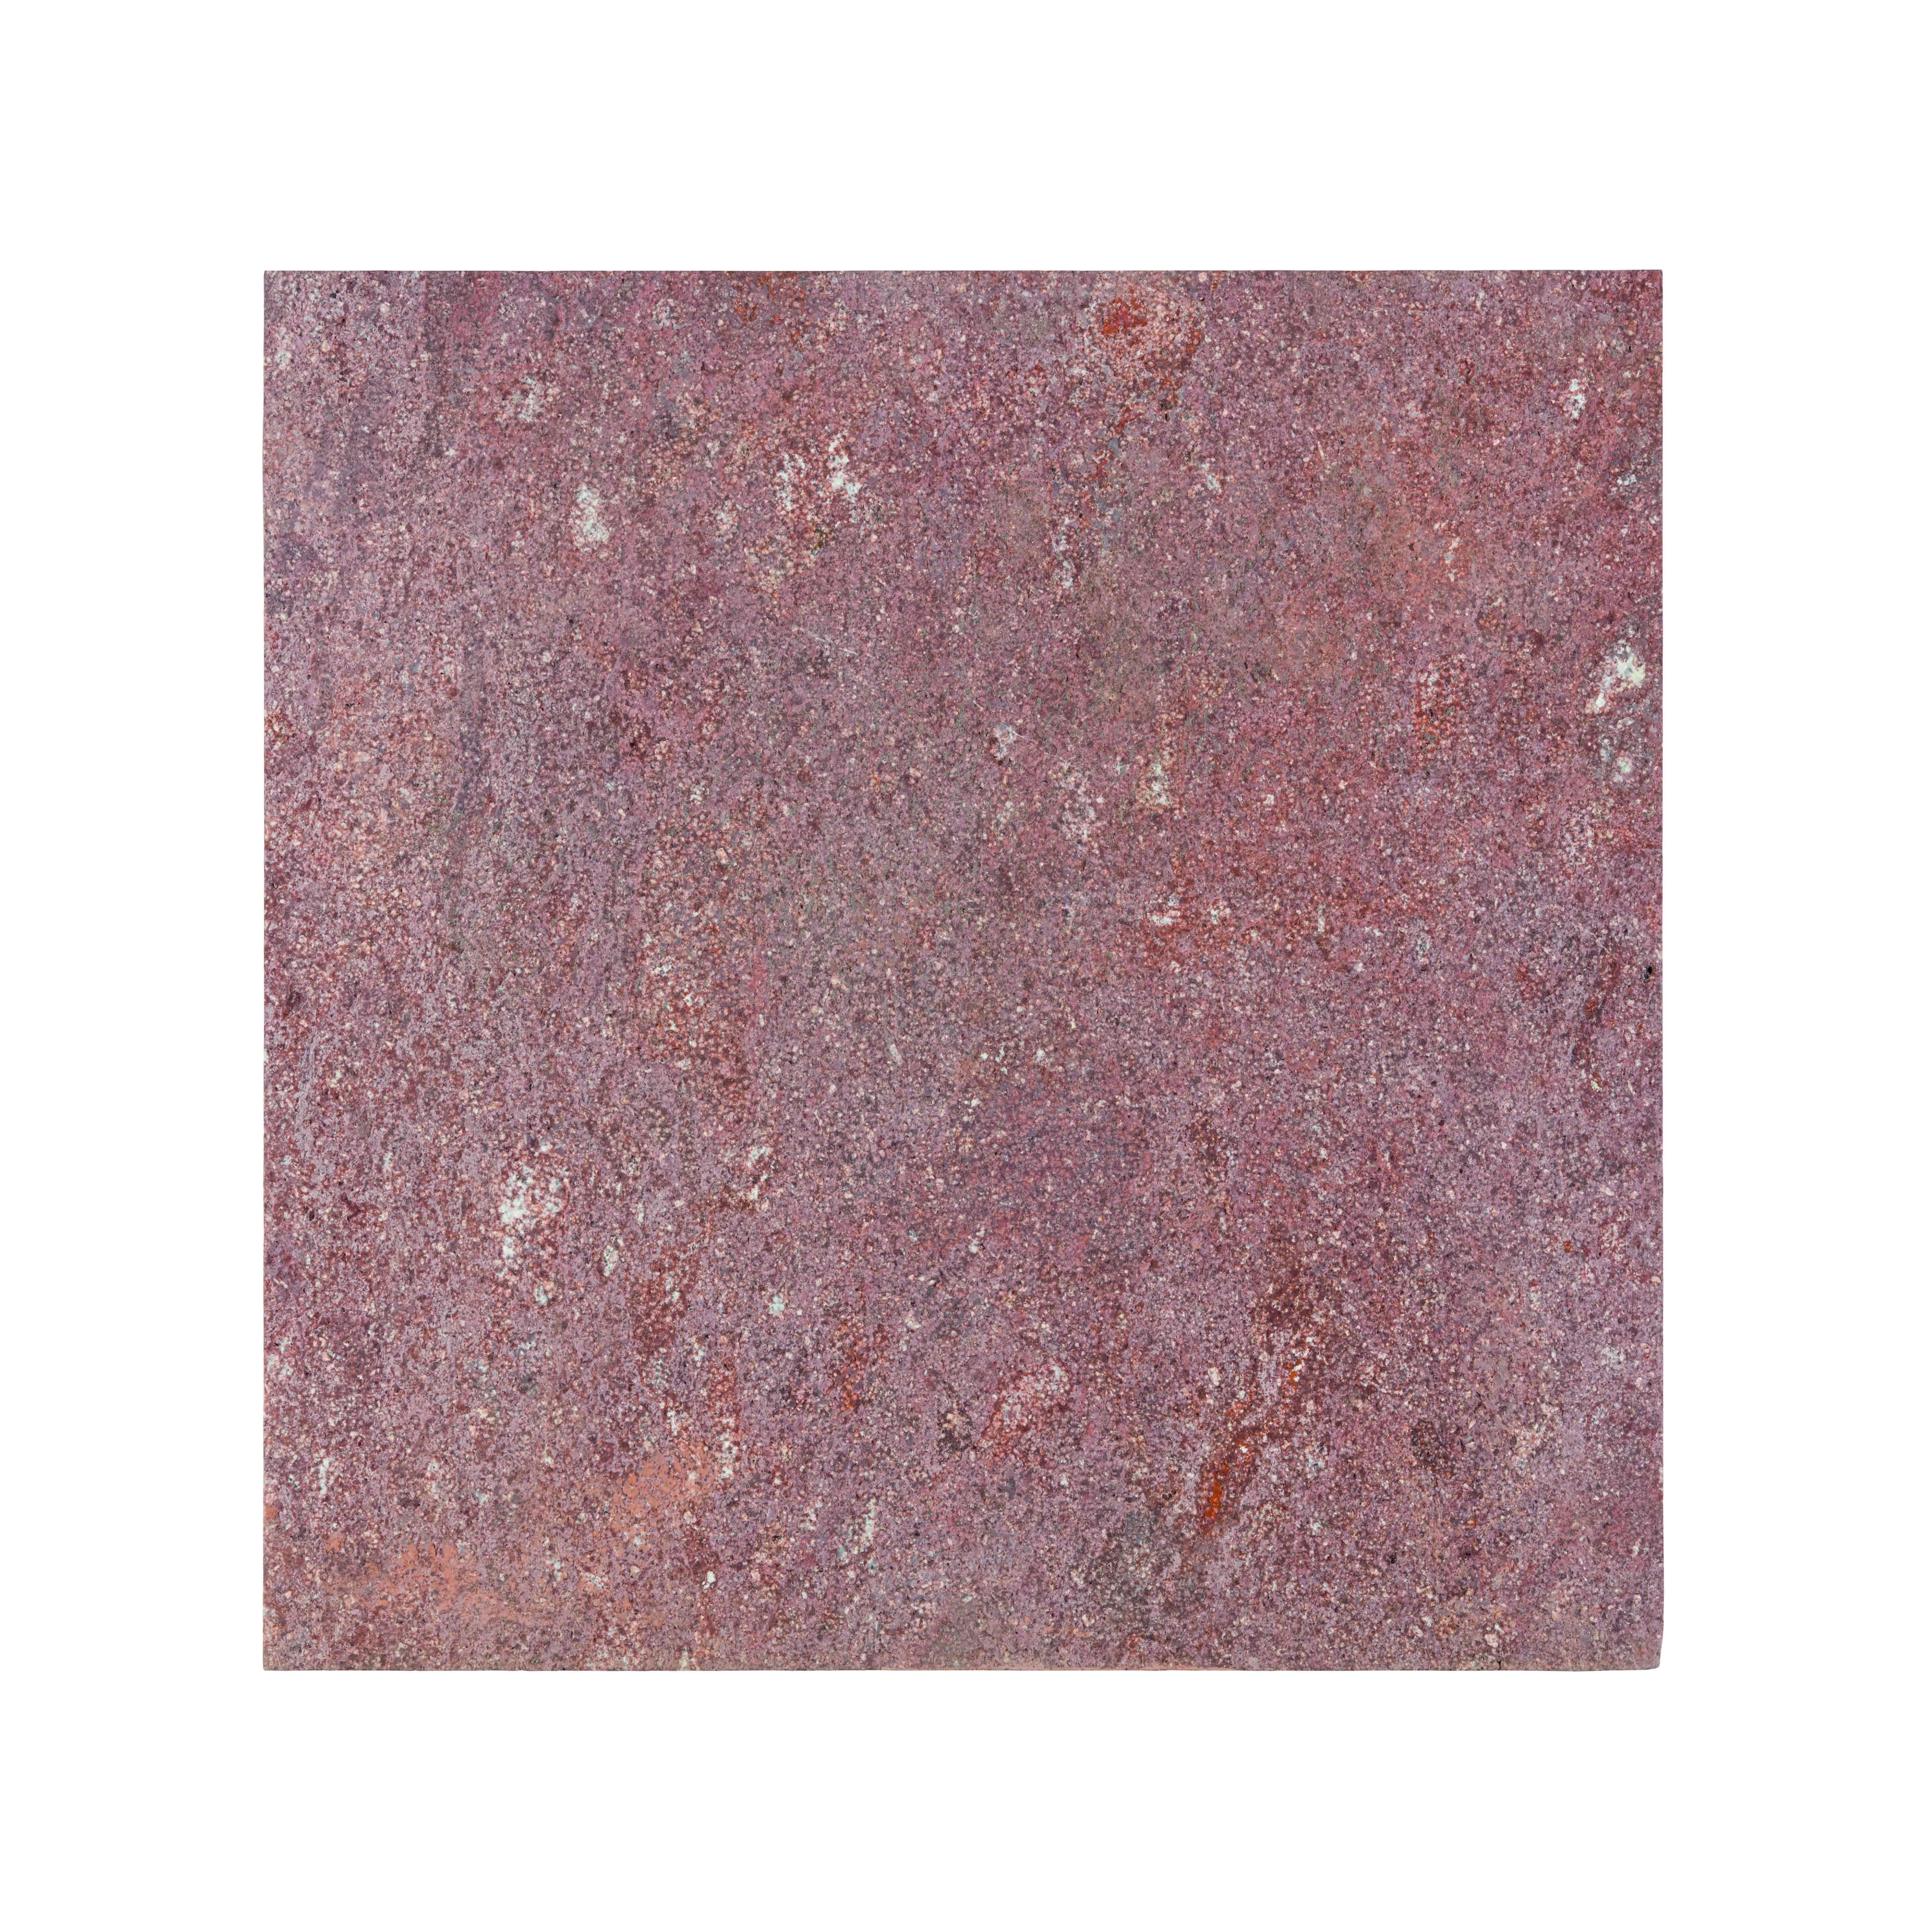 Imperial Red Porphyry Marshalls